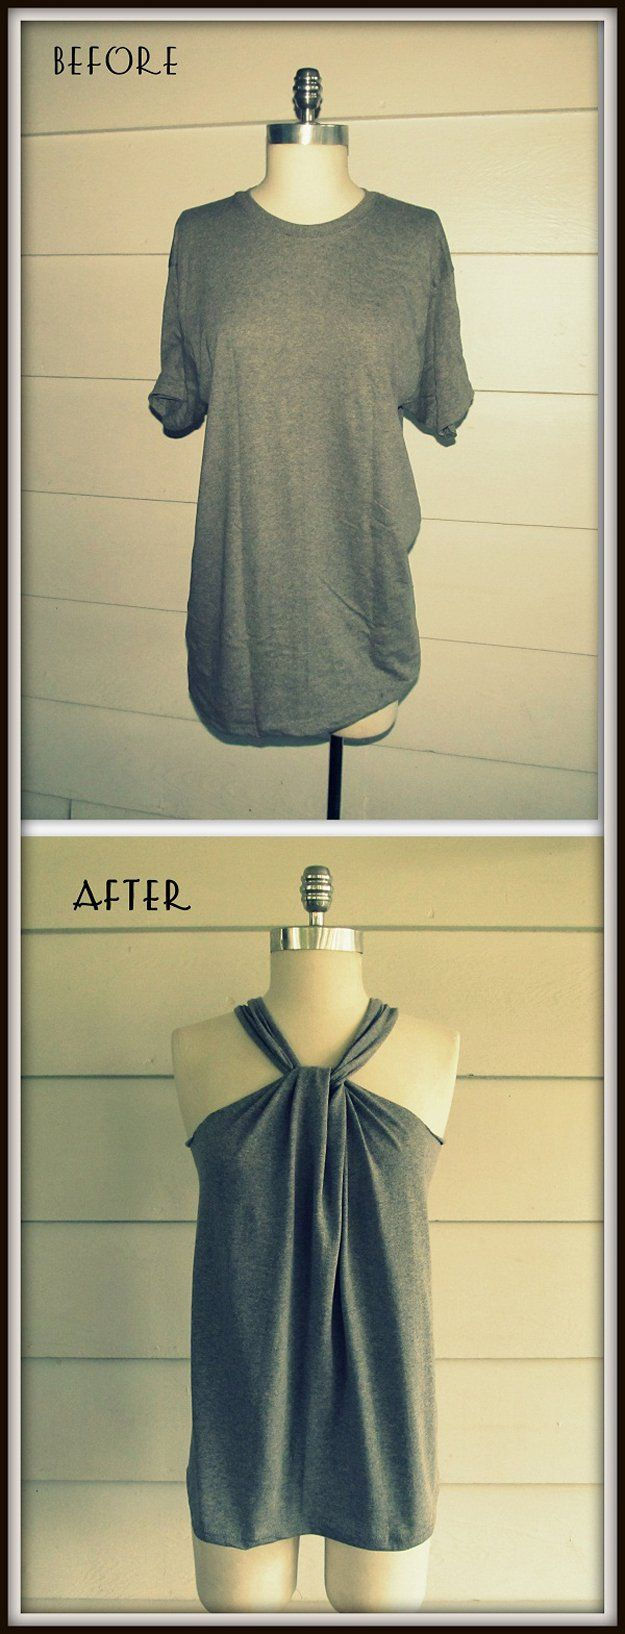 Fácil haltered DIY Top Design | artesaniasdebricolaje.ru/diy-clothes-sewing-blouses-tutorial/